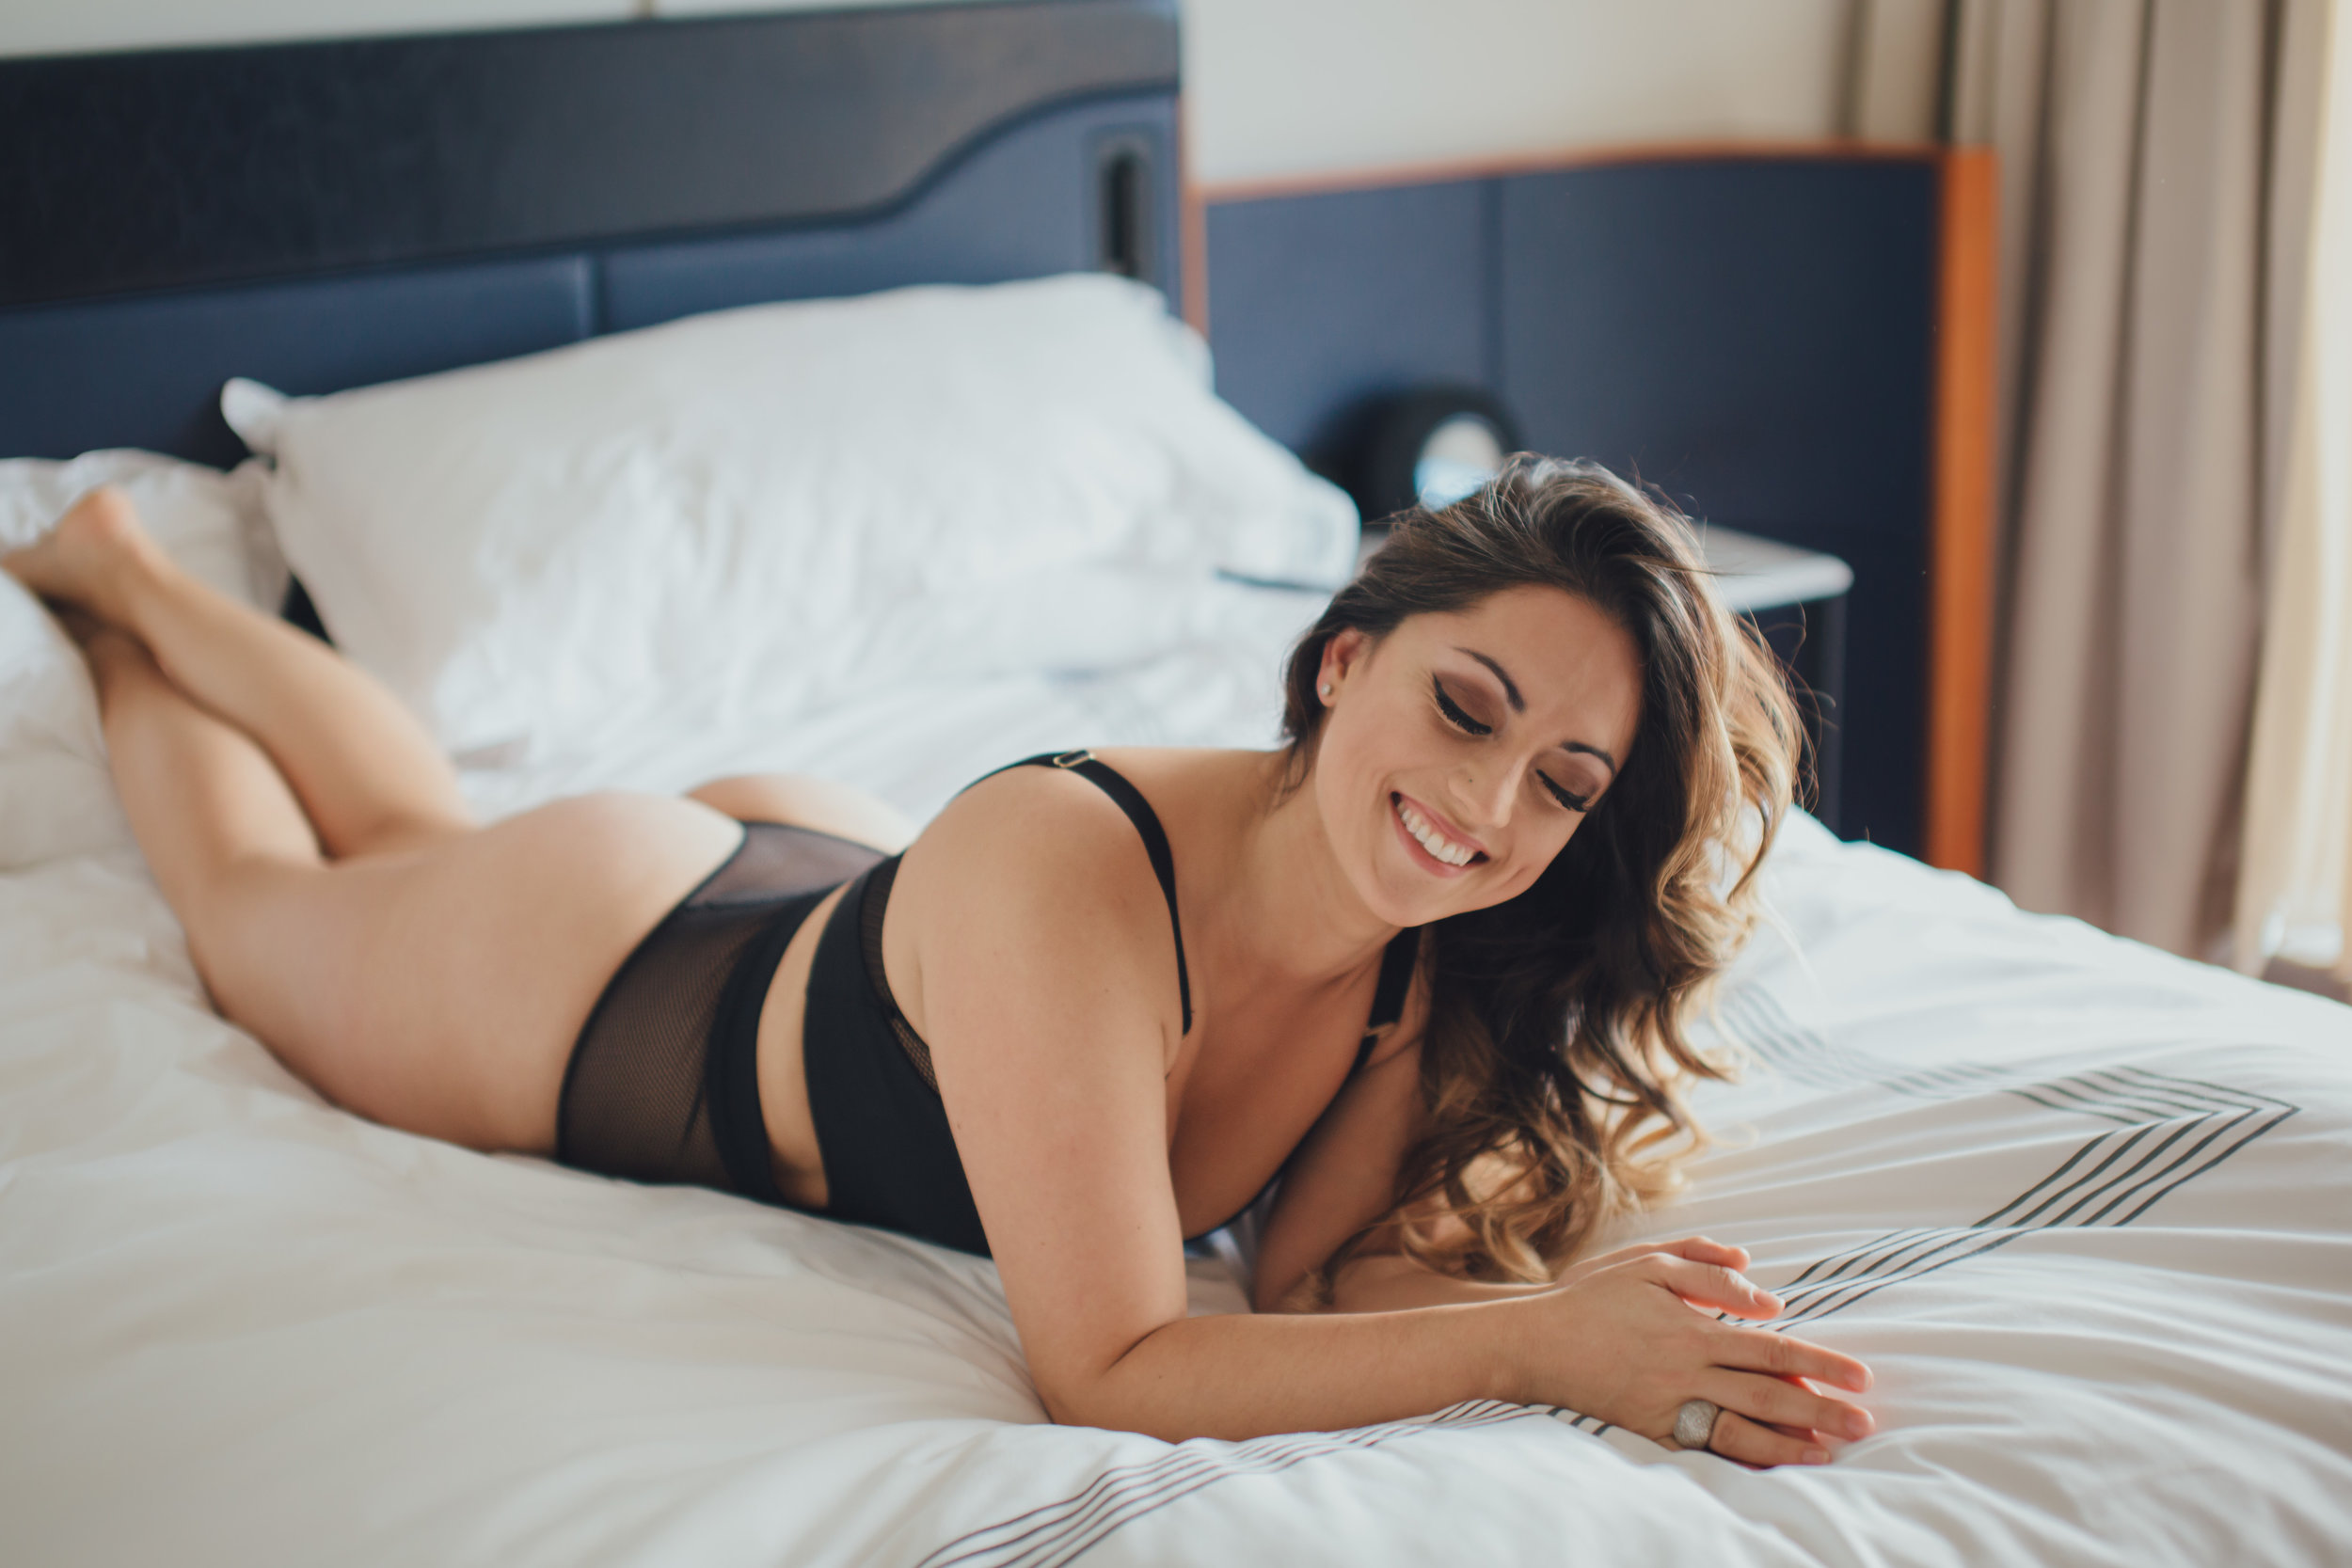 Blanca*  - I like this photo because of the smile on her face. Boudoir is a funny and often taboo idea. But the positive energy and increase in self-esteem that I have seen come out of these shoots, justifies 100+ more to come. EVERY. SINGLE. WOMAN. is self conscious of her body. I don't care if she's skinny, fat, tone or soft she has a problem area that is multiplied in her head. However, something about the magic of being vulnerable, showing up to a hotel to get your hair and make up done, and putting on something that makes you feel like a fierce vixen is confidence boosting. The cards and texts and GIFTS (GIFTS!) I have received from clients after a shoot thanking me for making them feel the way I did and portraying them in a way they thought was only possible in their imagination makes my heart explode. That is literally all I could dream to do for them and at the end of the day, I want them to leave with this smile.     *All boudoir photos I post or share have the consent of the individual. Peoples privacy and security is my number one priority and I'd never compromise that.